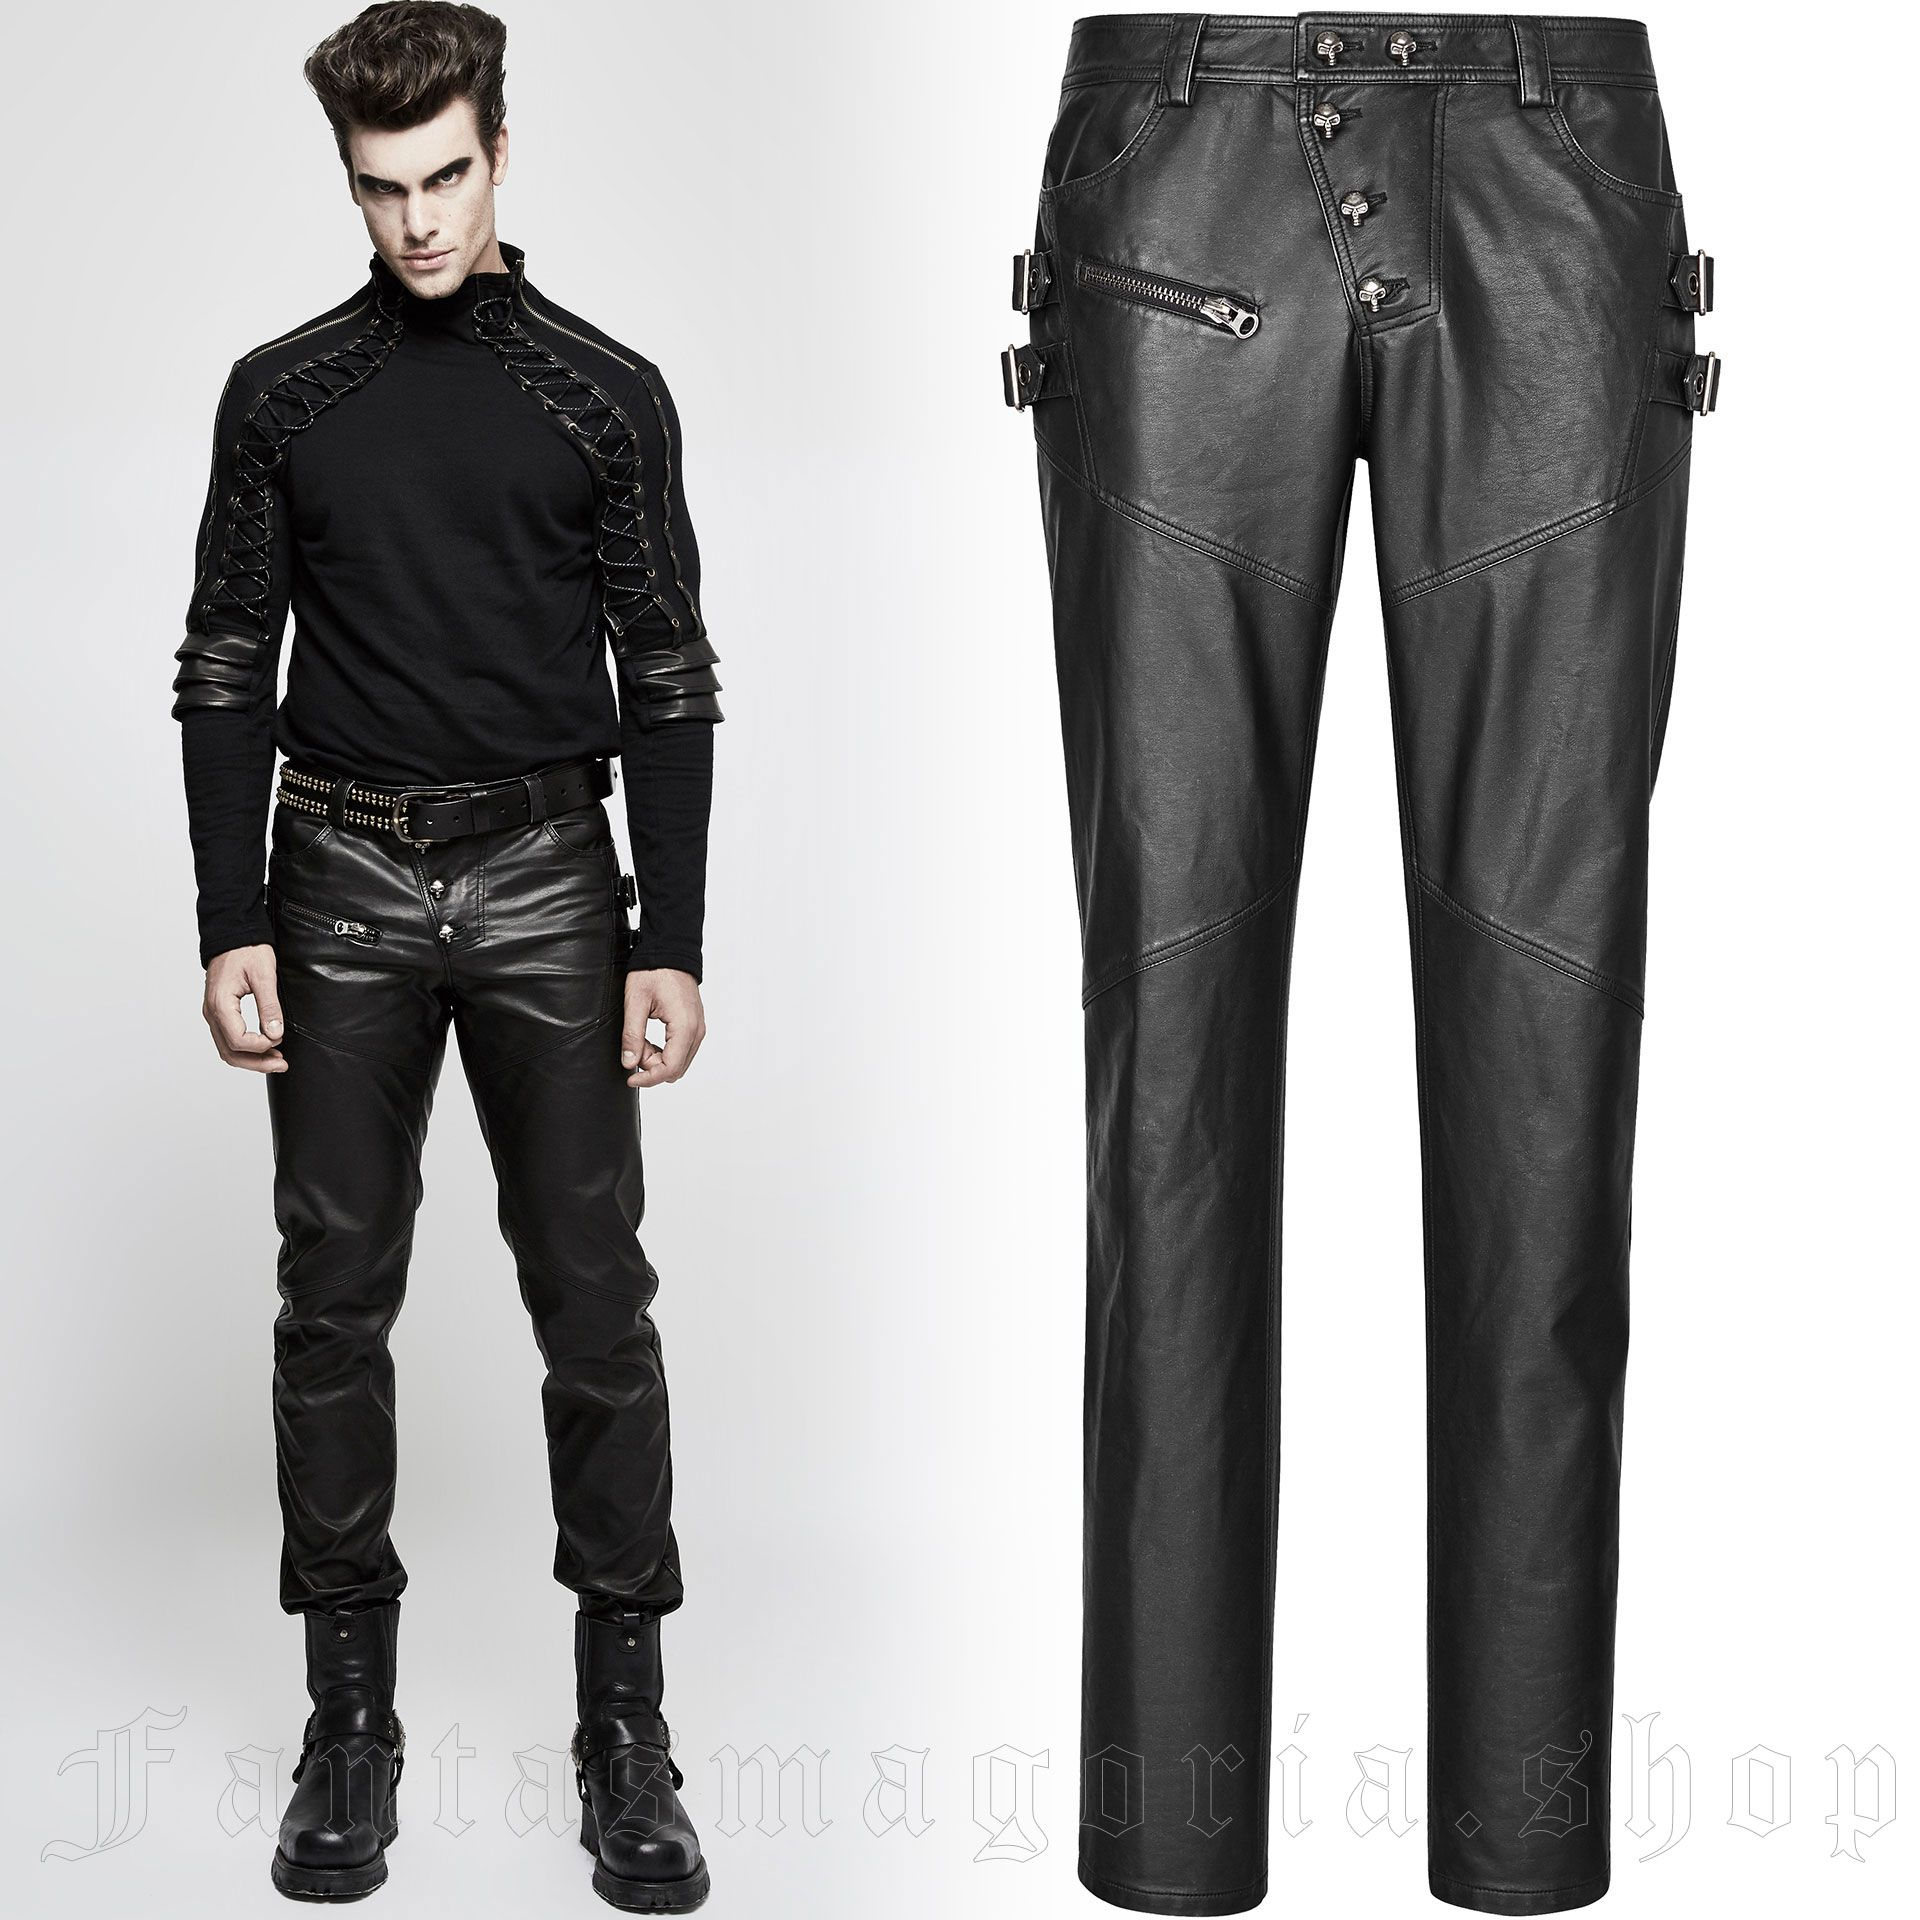 men's Nergal Trousers by PUNK RAVE brand, code: K-301